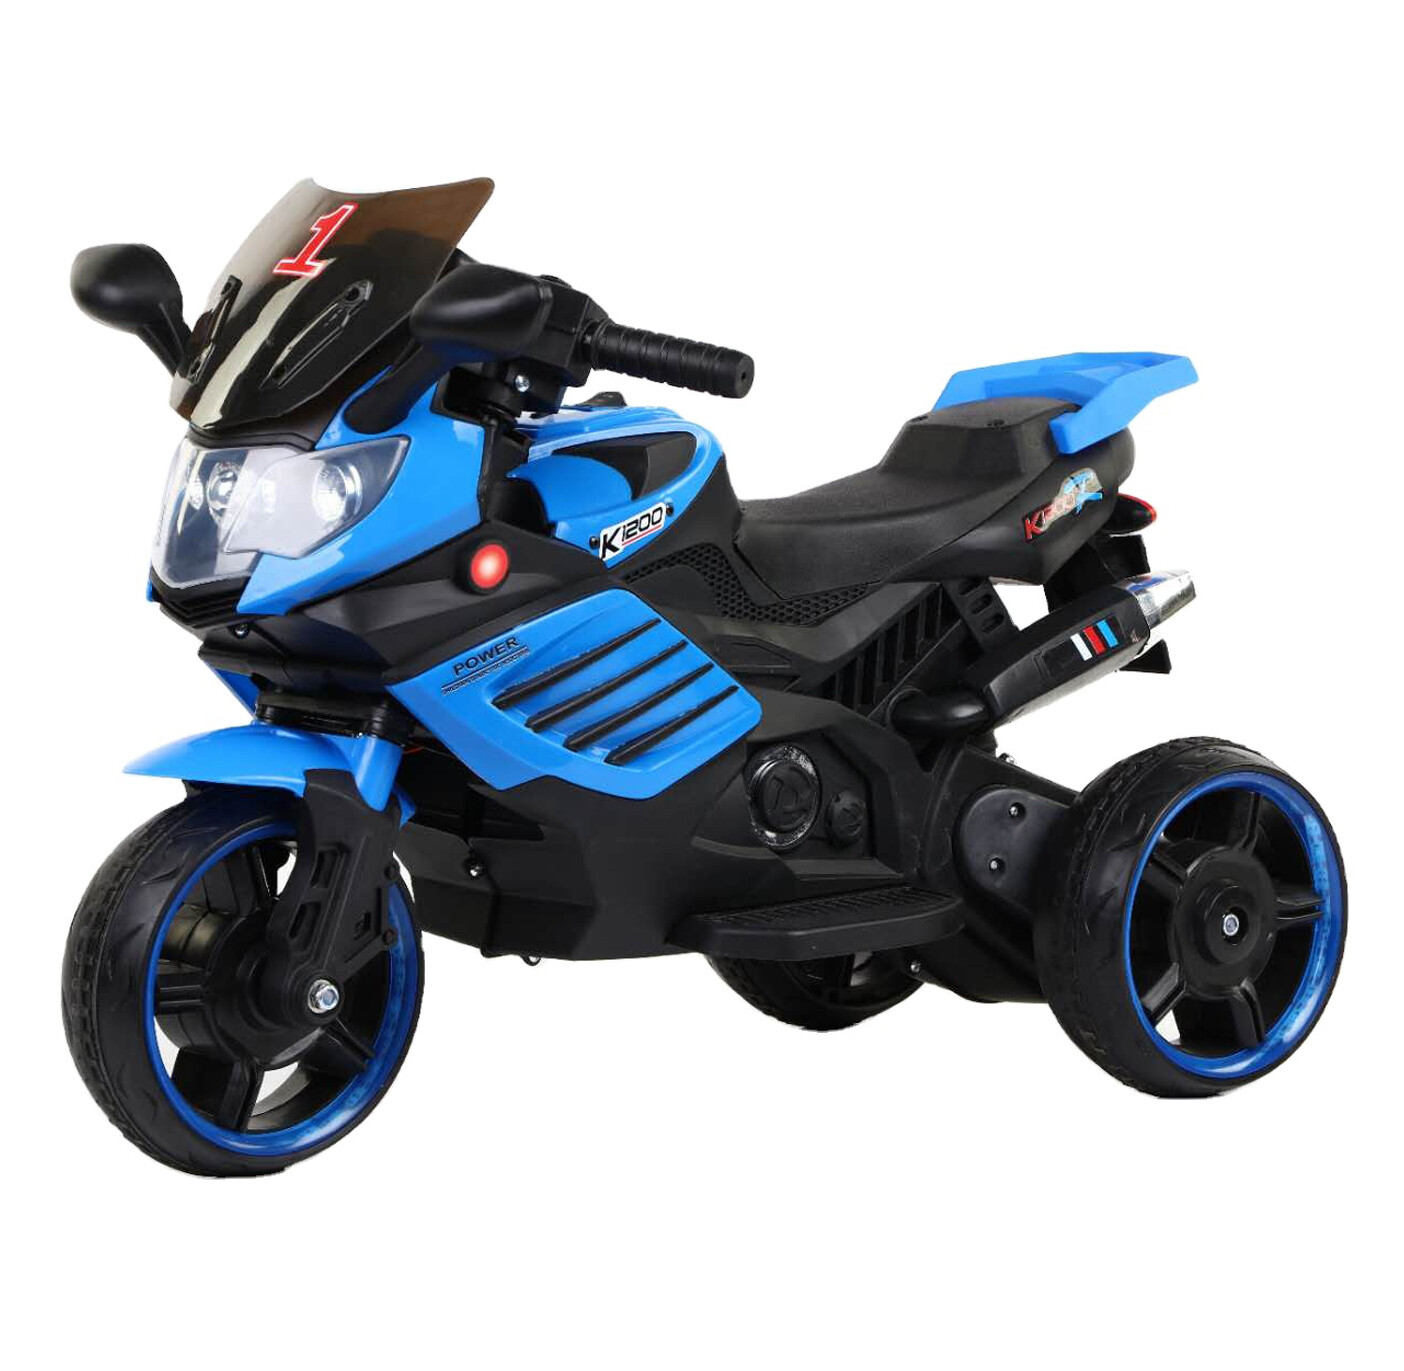 Baby ride on toy musical light up 6V mini motorcycle  electric toy car with music - Blue